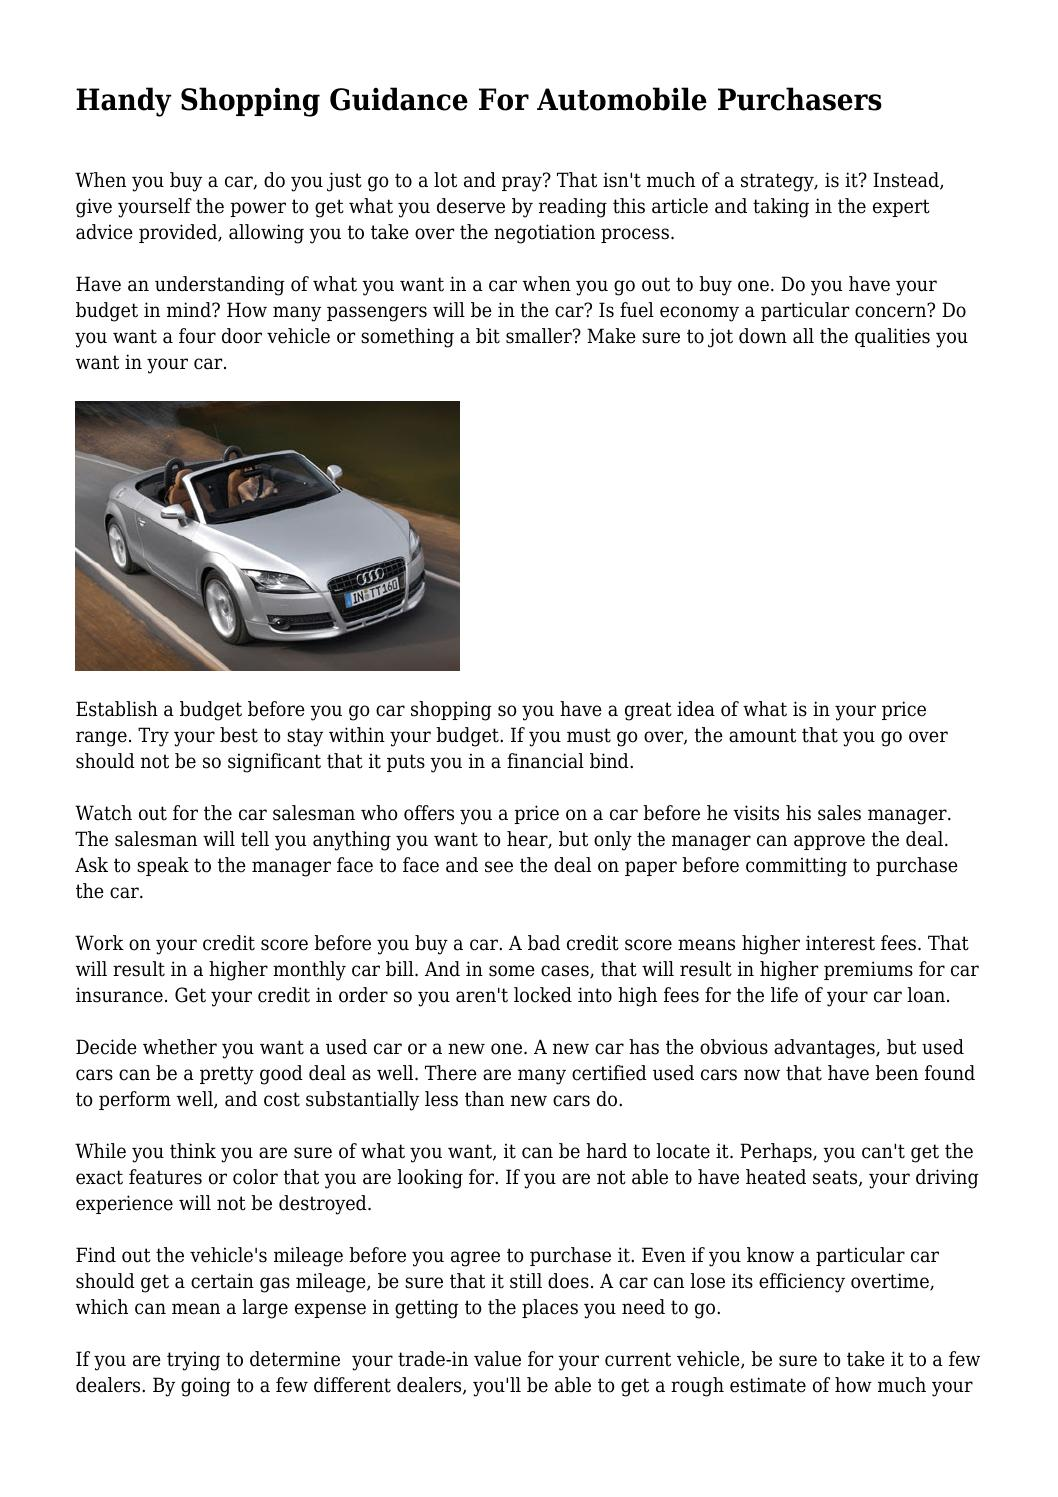 Handy Shopping Guidance For Automobile Purchasers by ...